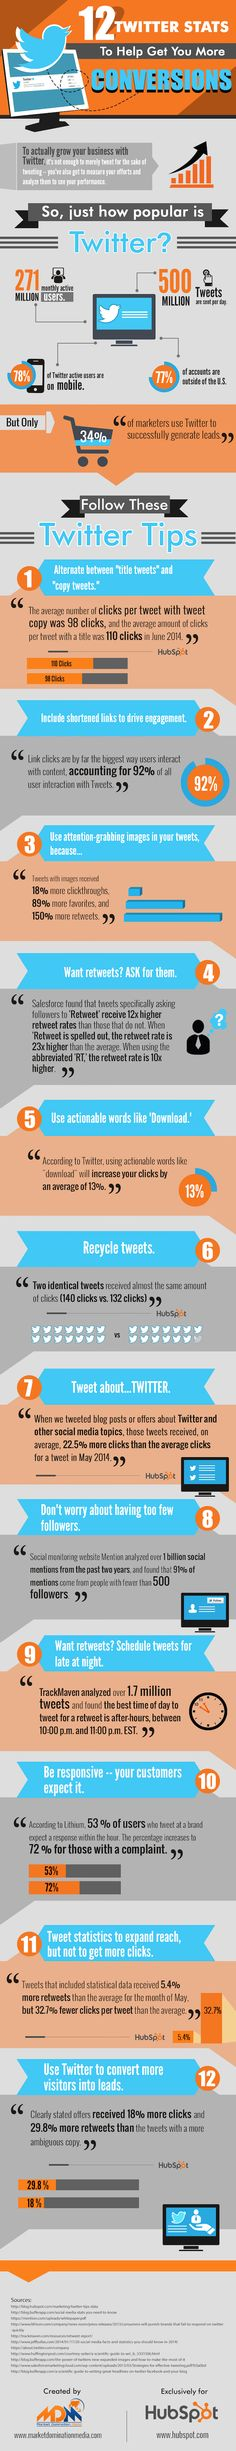 Get-More-Conversions-Using-These-12-Twitter-Stats-Infographic.jpg (600×6232)